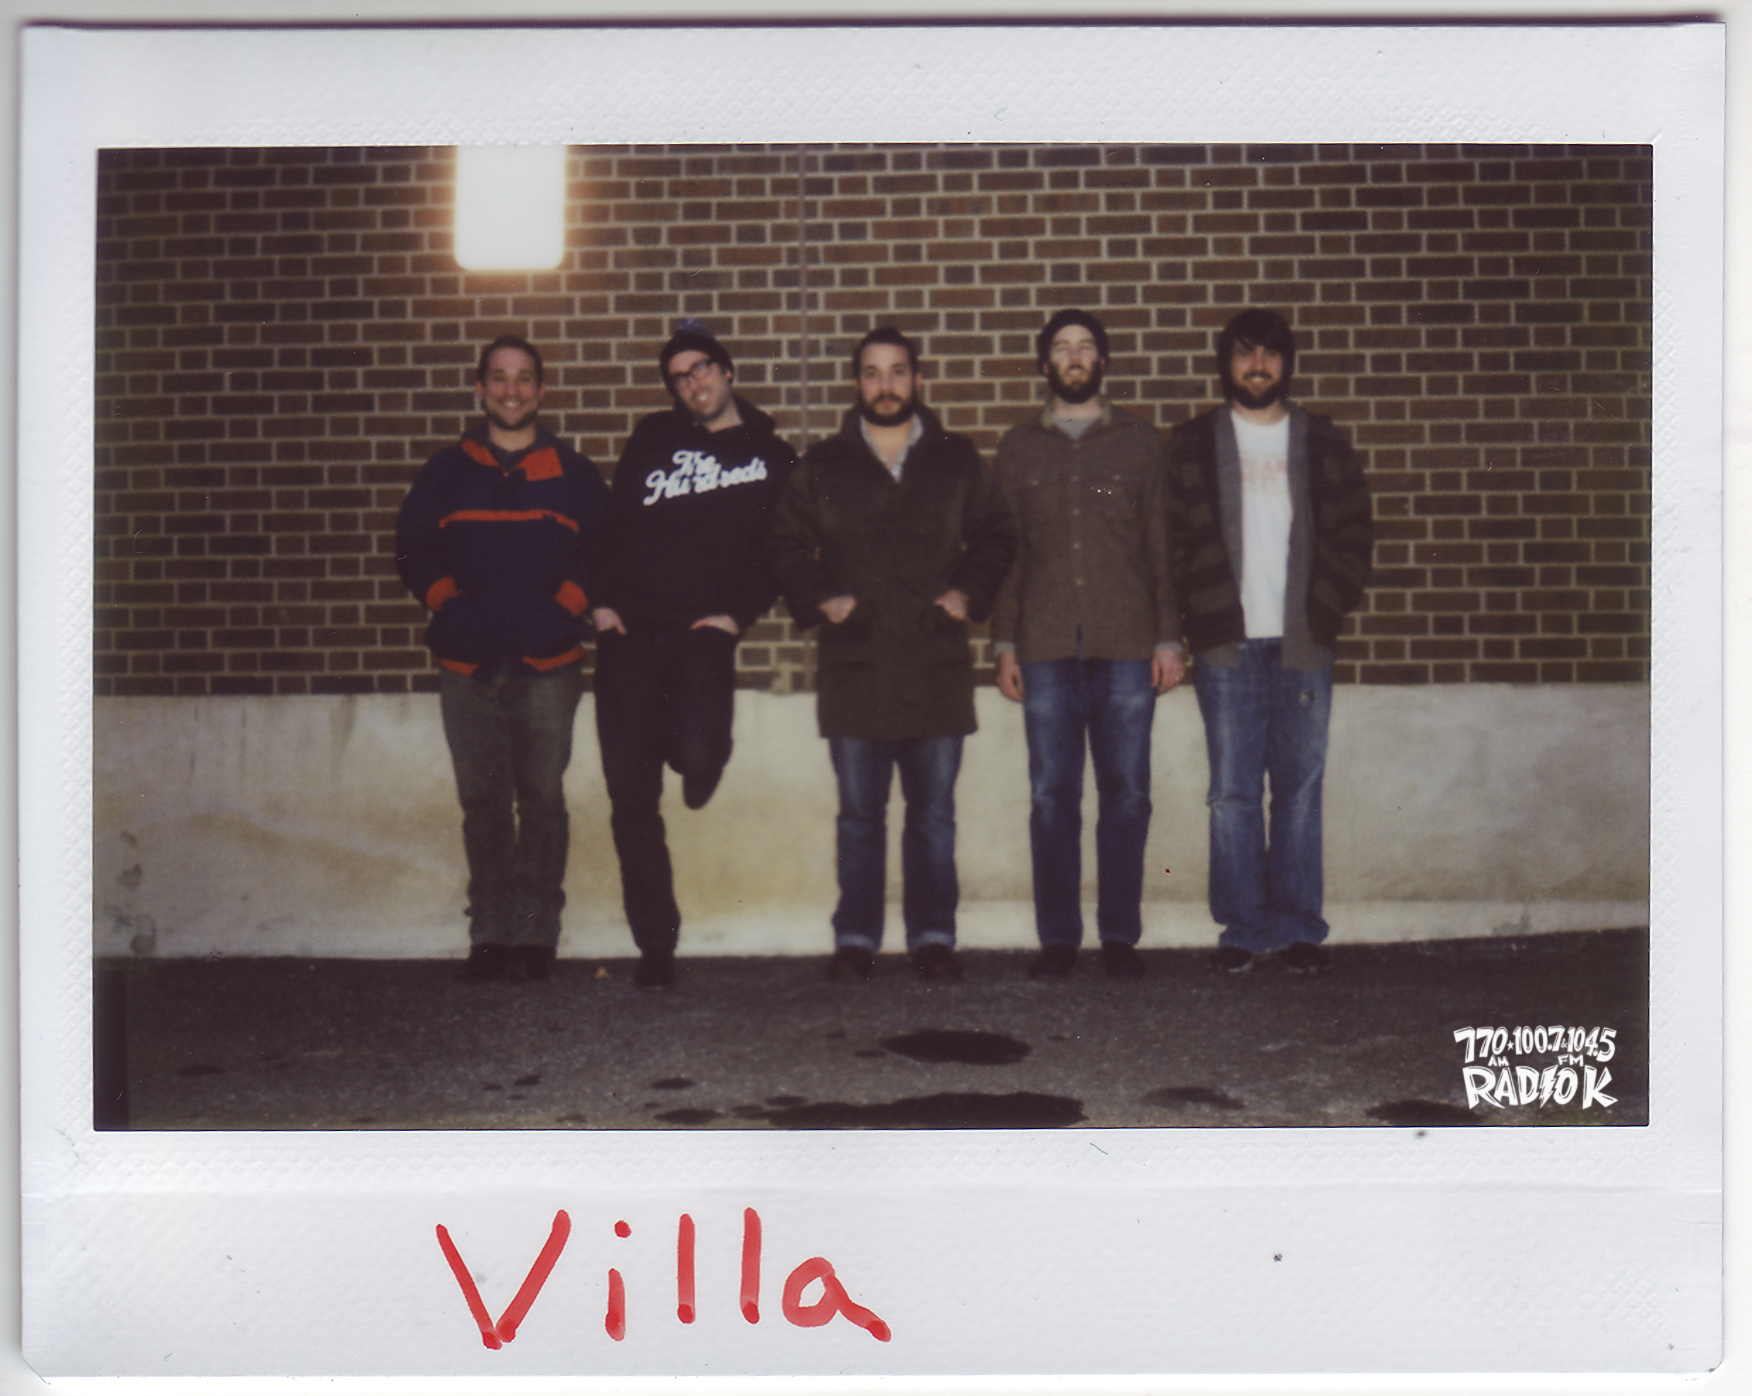 Villa Radio K In-studio Polaroid